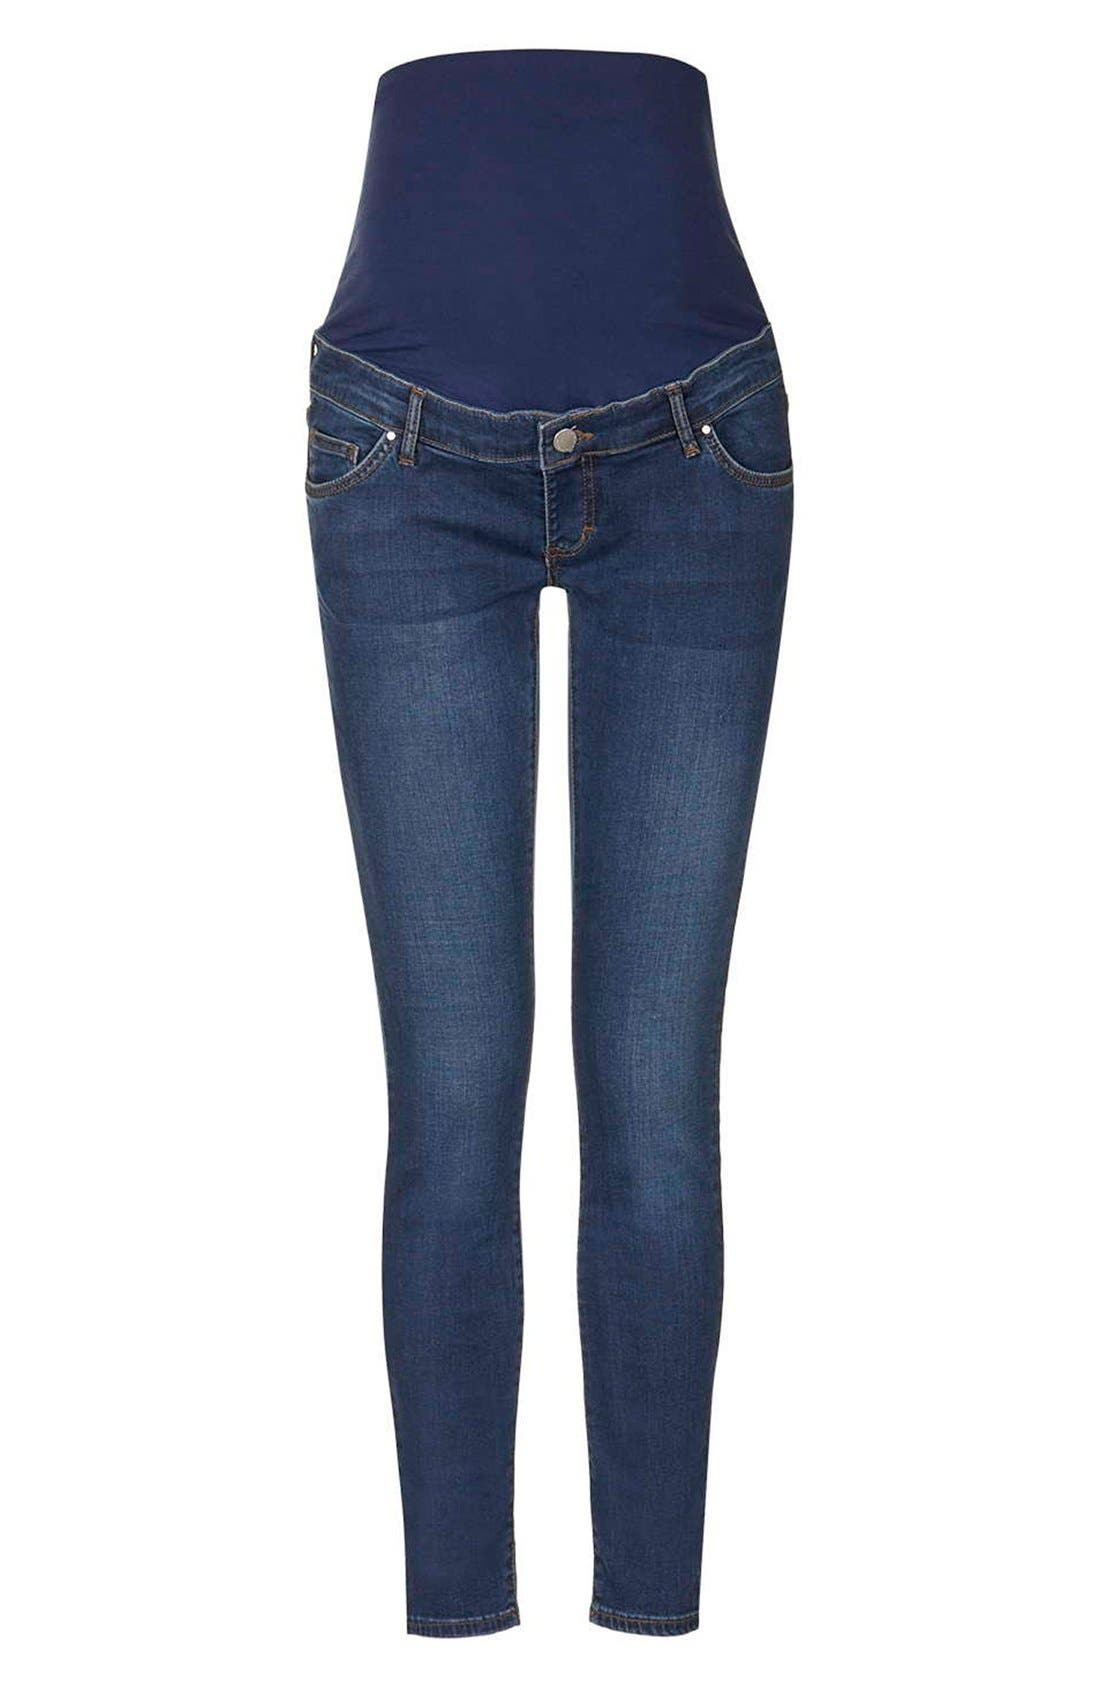 'Leigh' Skinny Maternity Jeans,                             Main thumbnail 1, color,                             Dark Denim